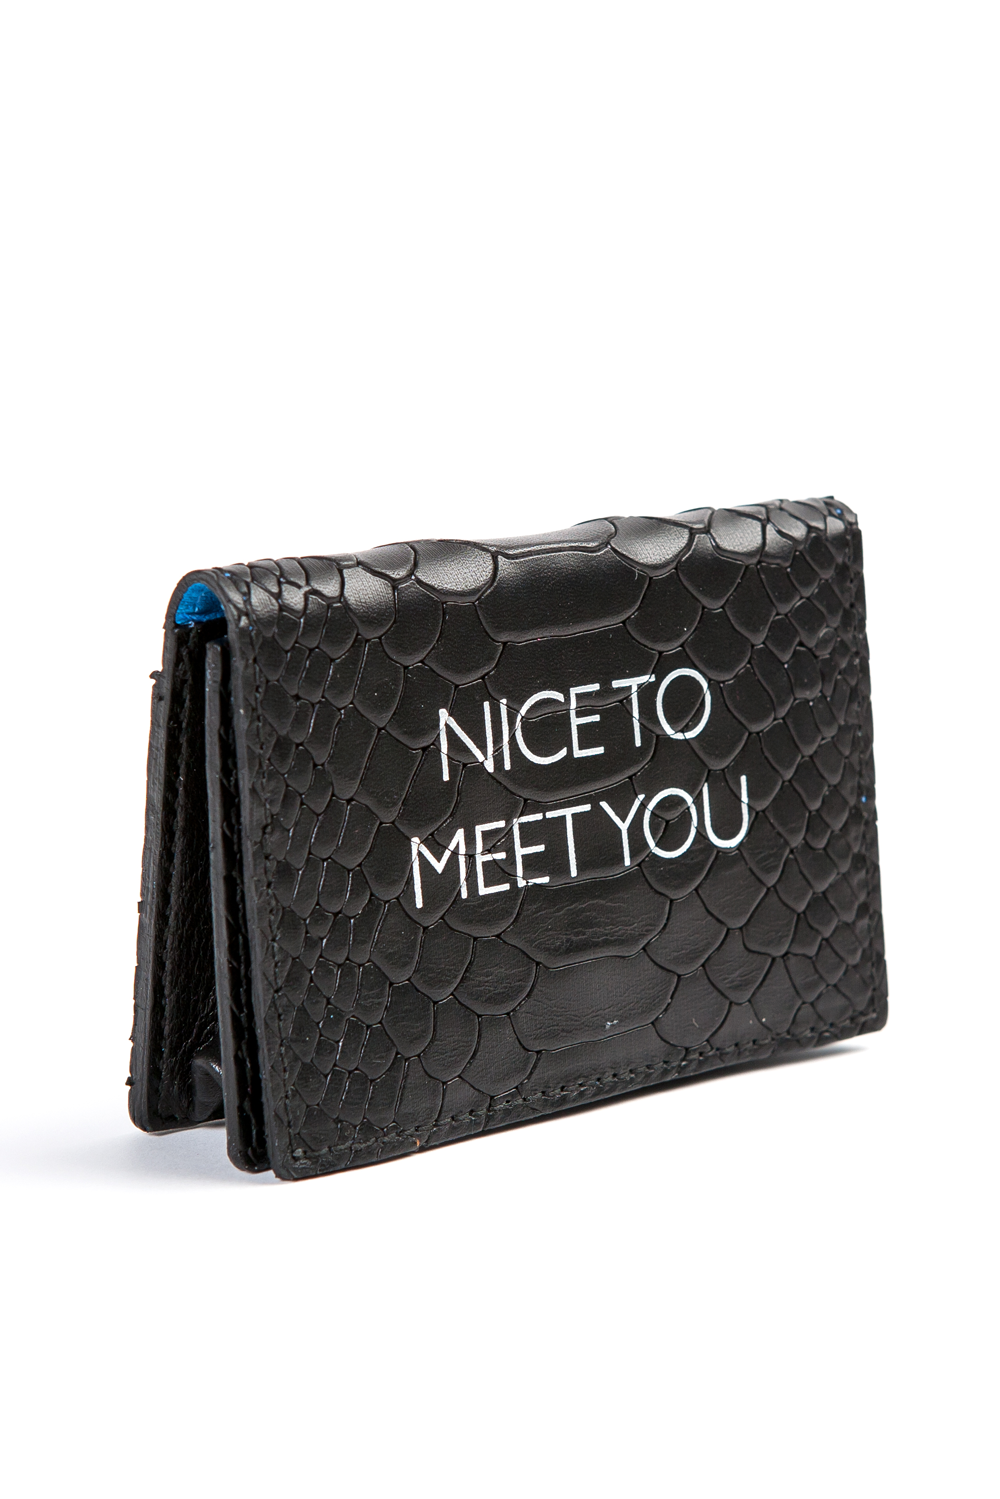 Mel Boteri | 'Nice To Meet You' Cardholder | Black Snake Print Leather | Side